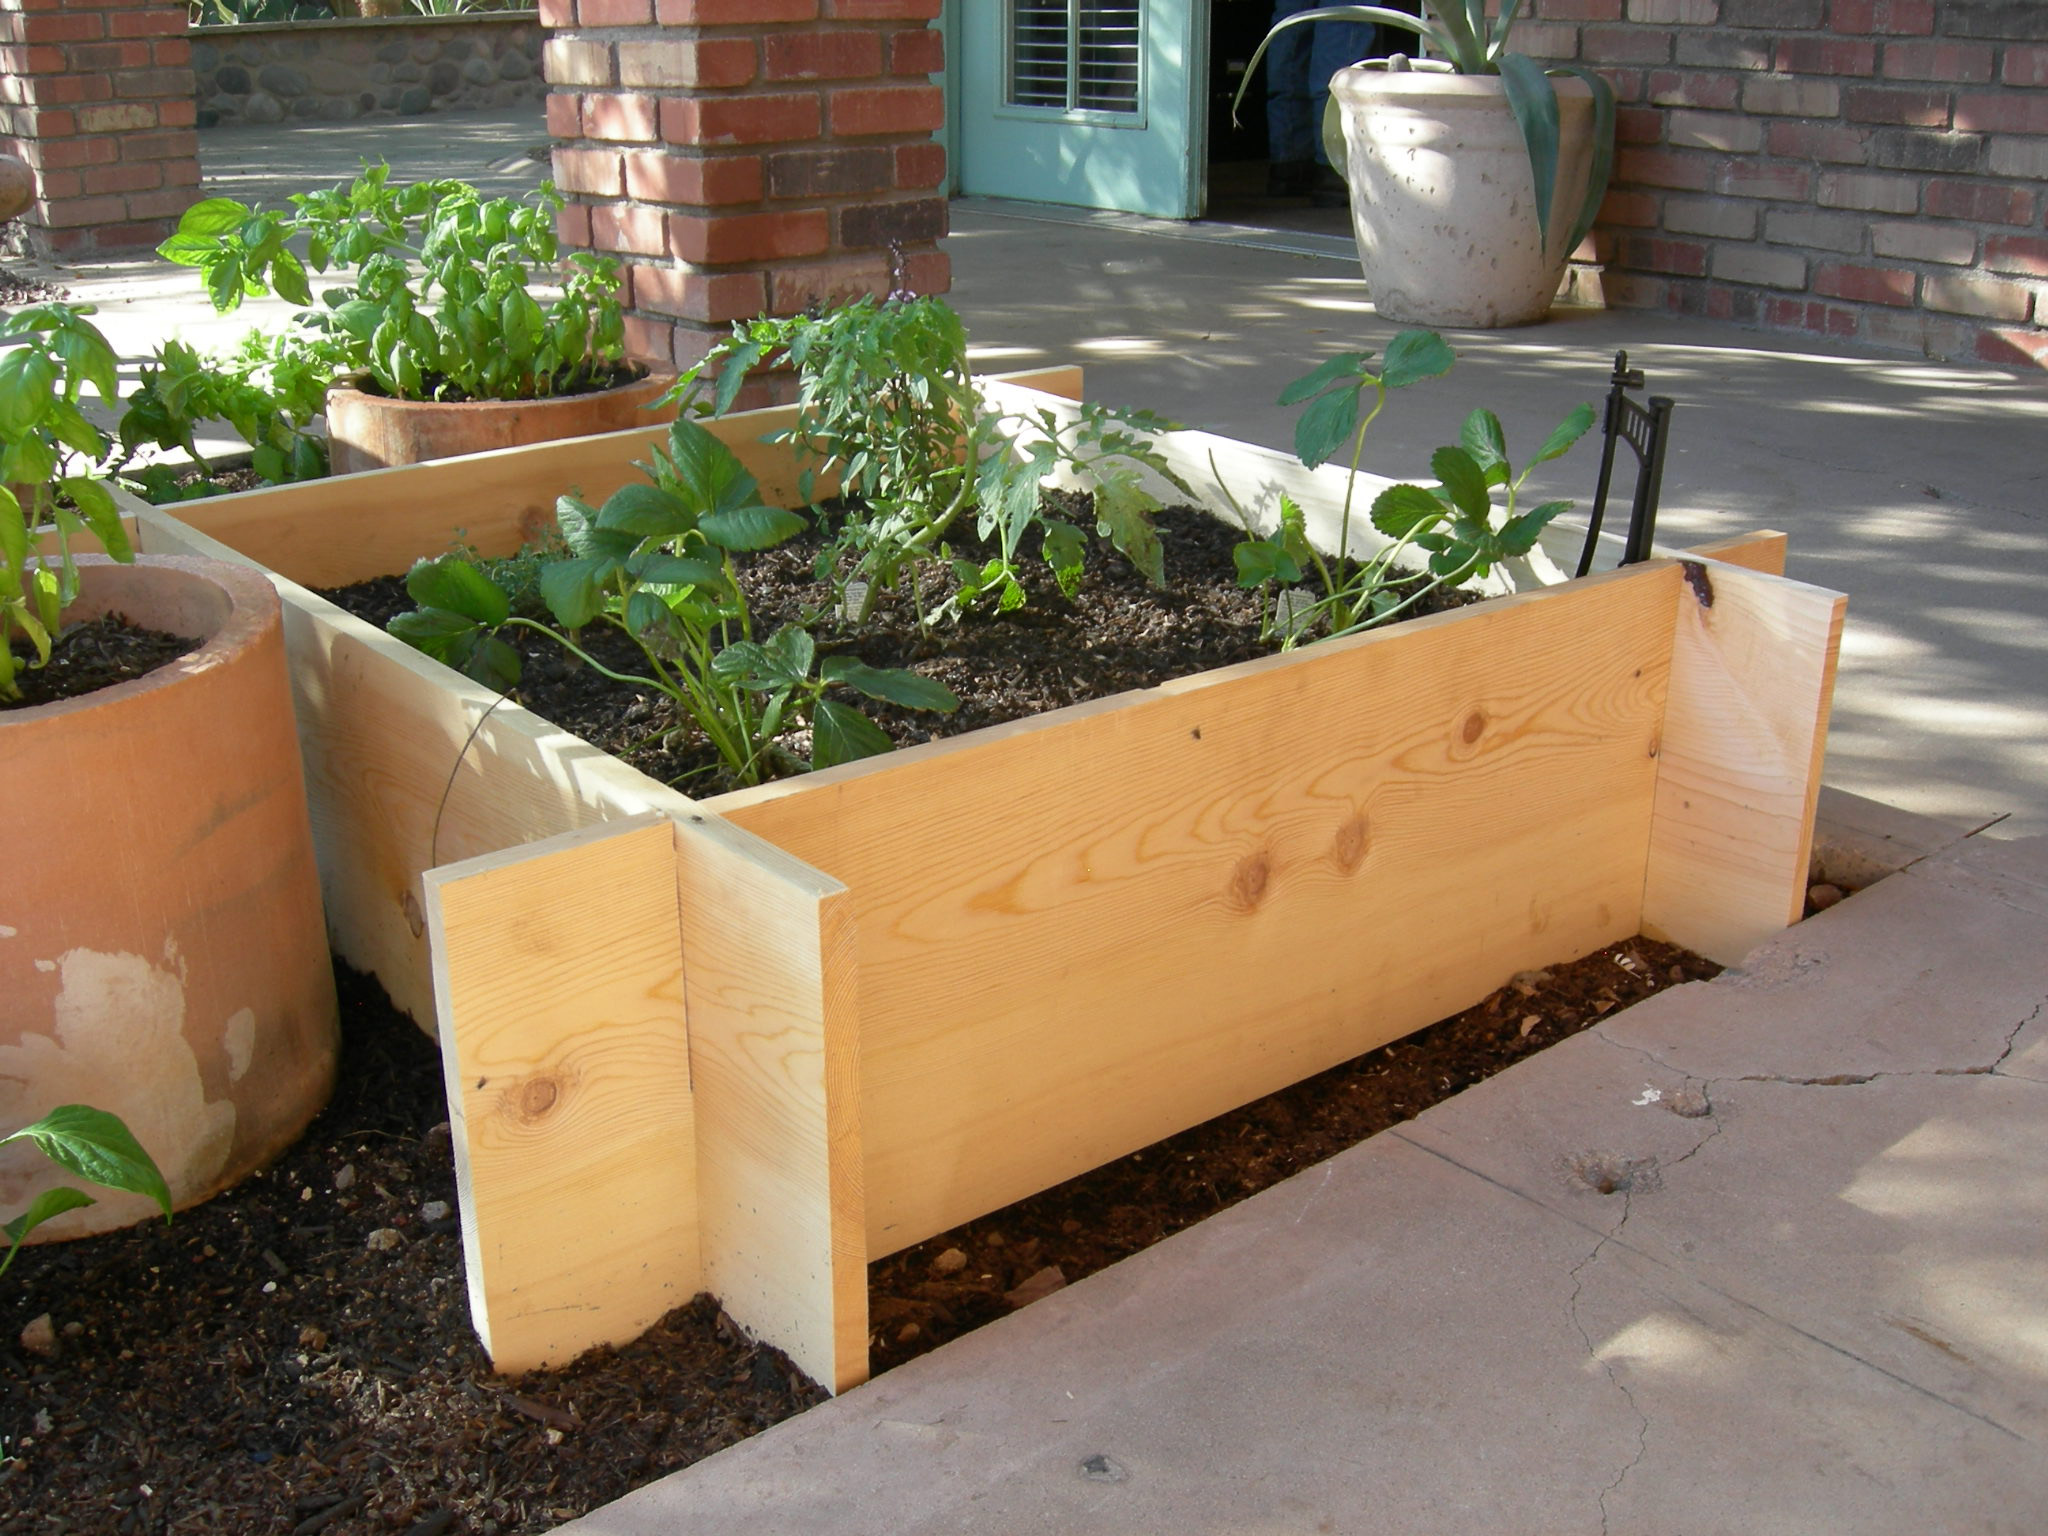 30 x 30 Raised Garden Box